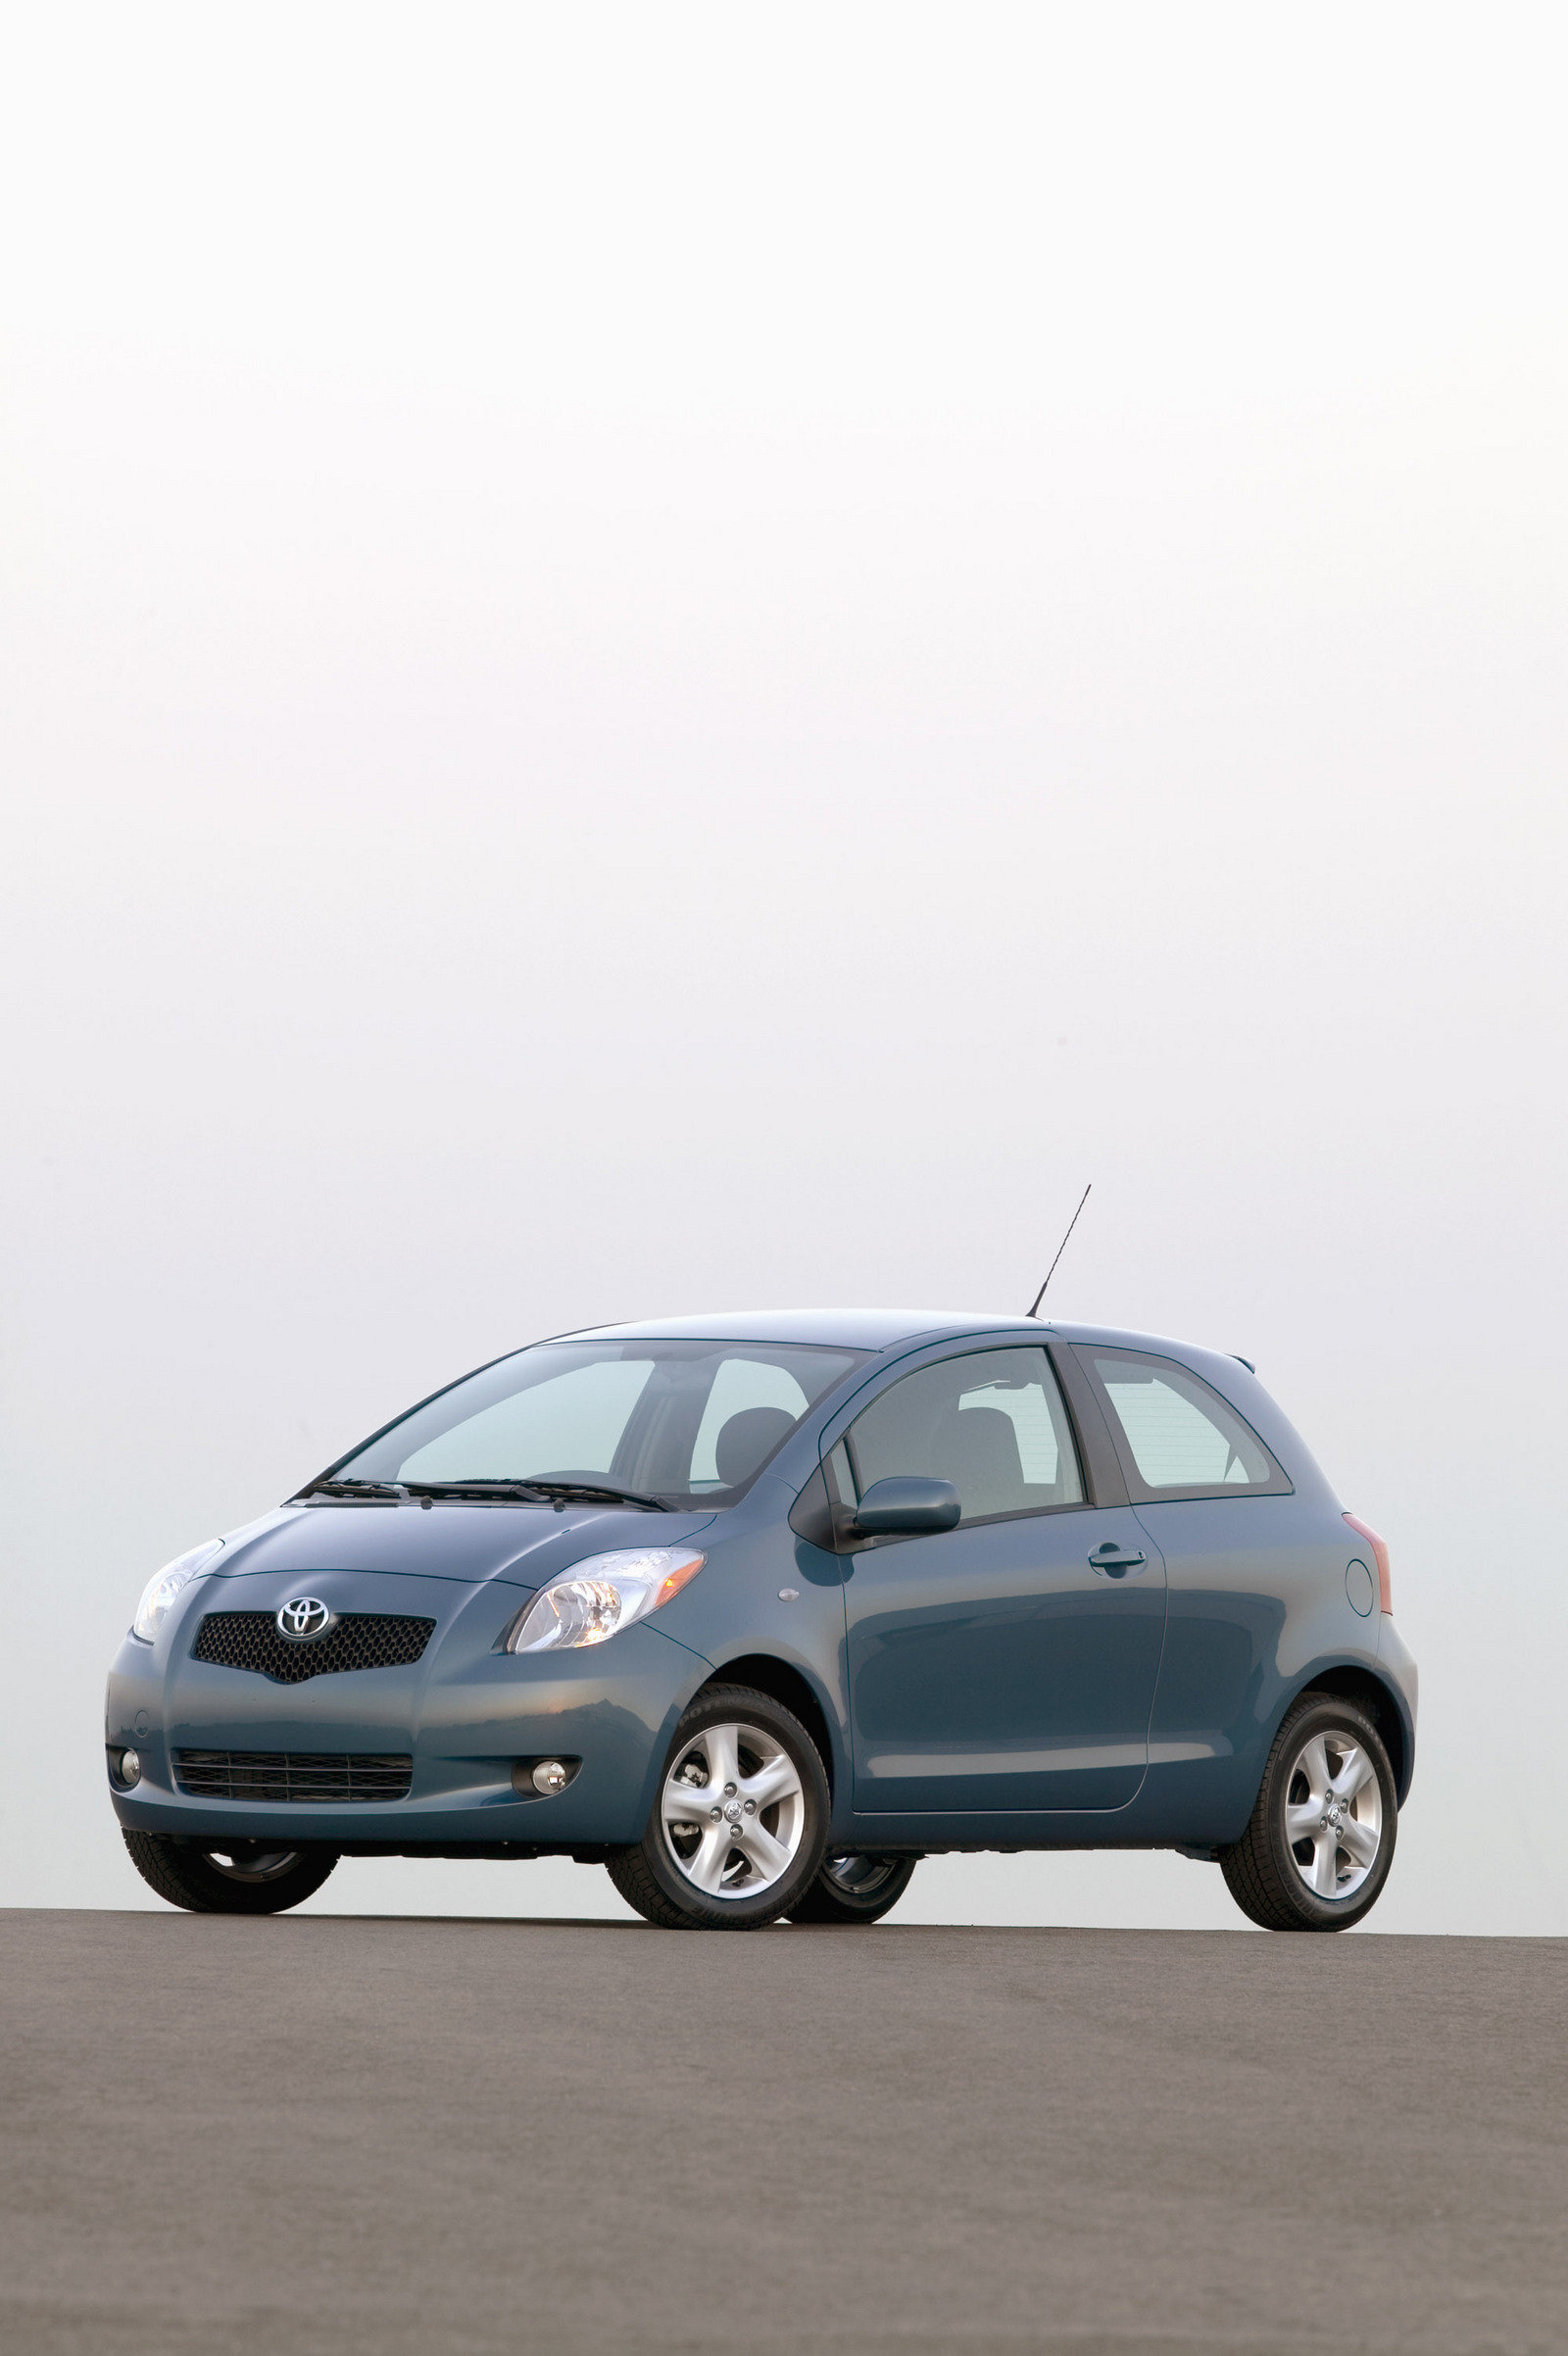 2007 toyota yaris picture 102460 car review top speed. Black Bedroom Furniture Sets. Home Design Ideas